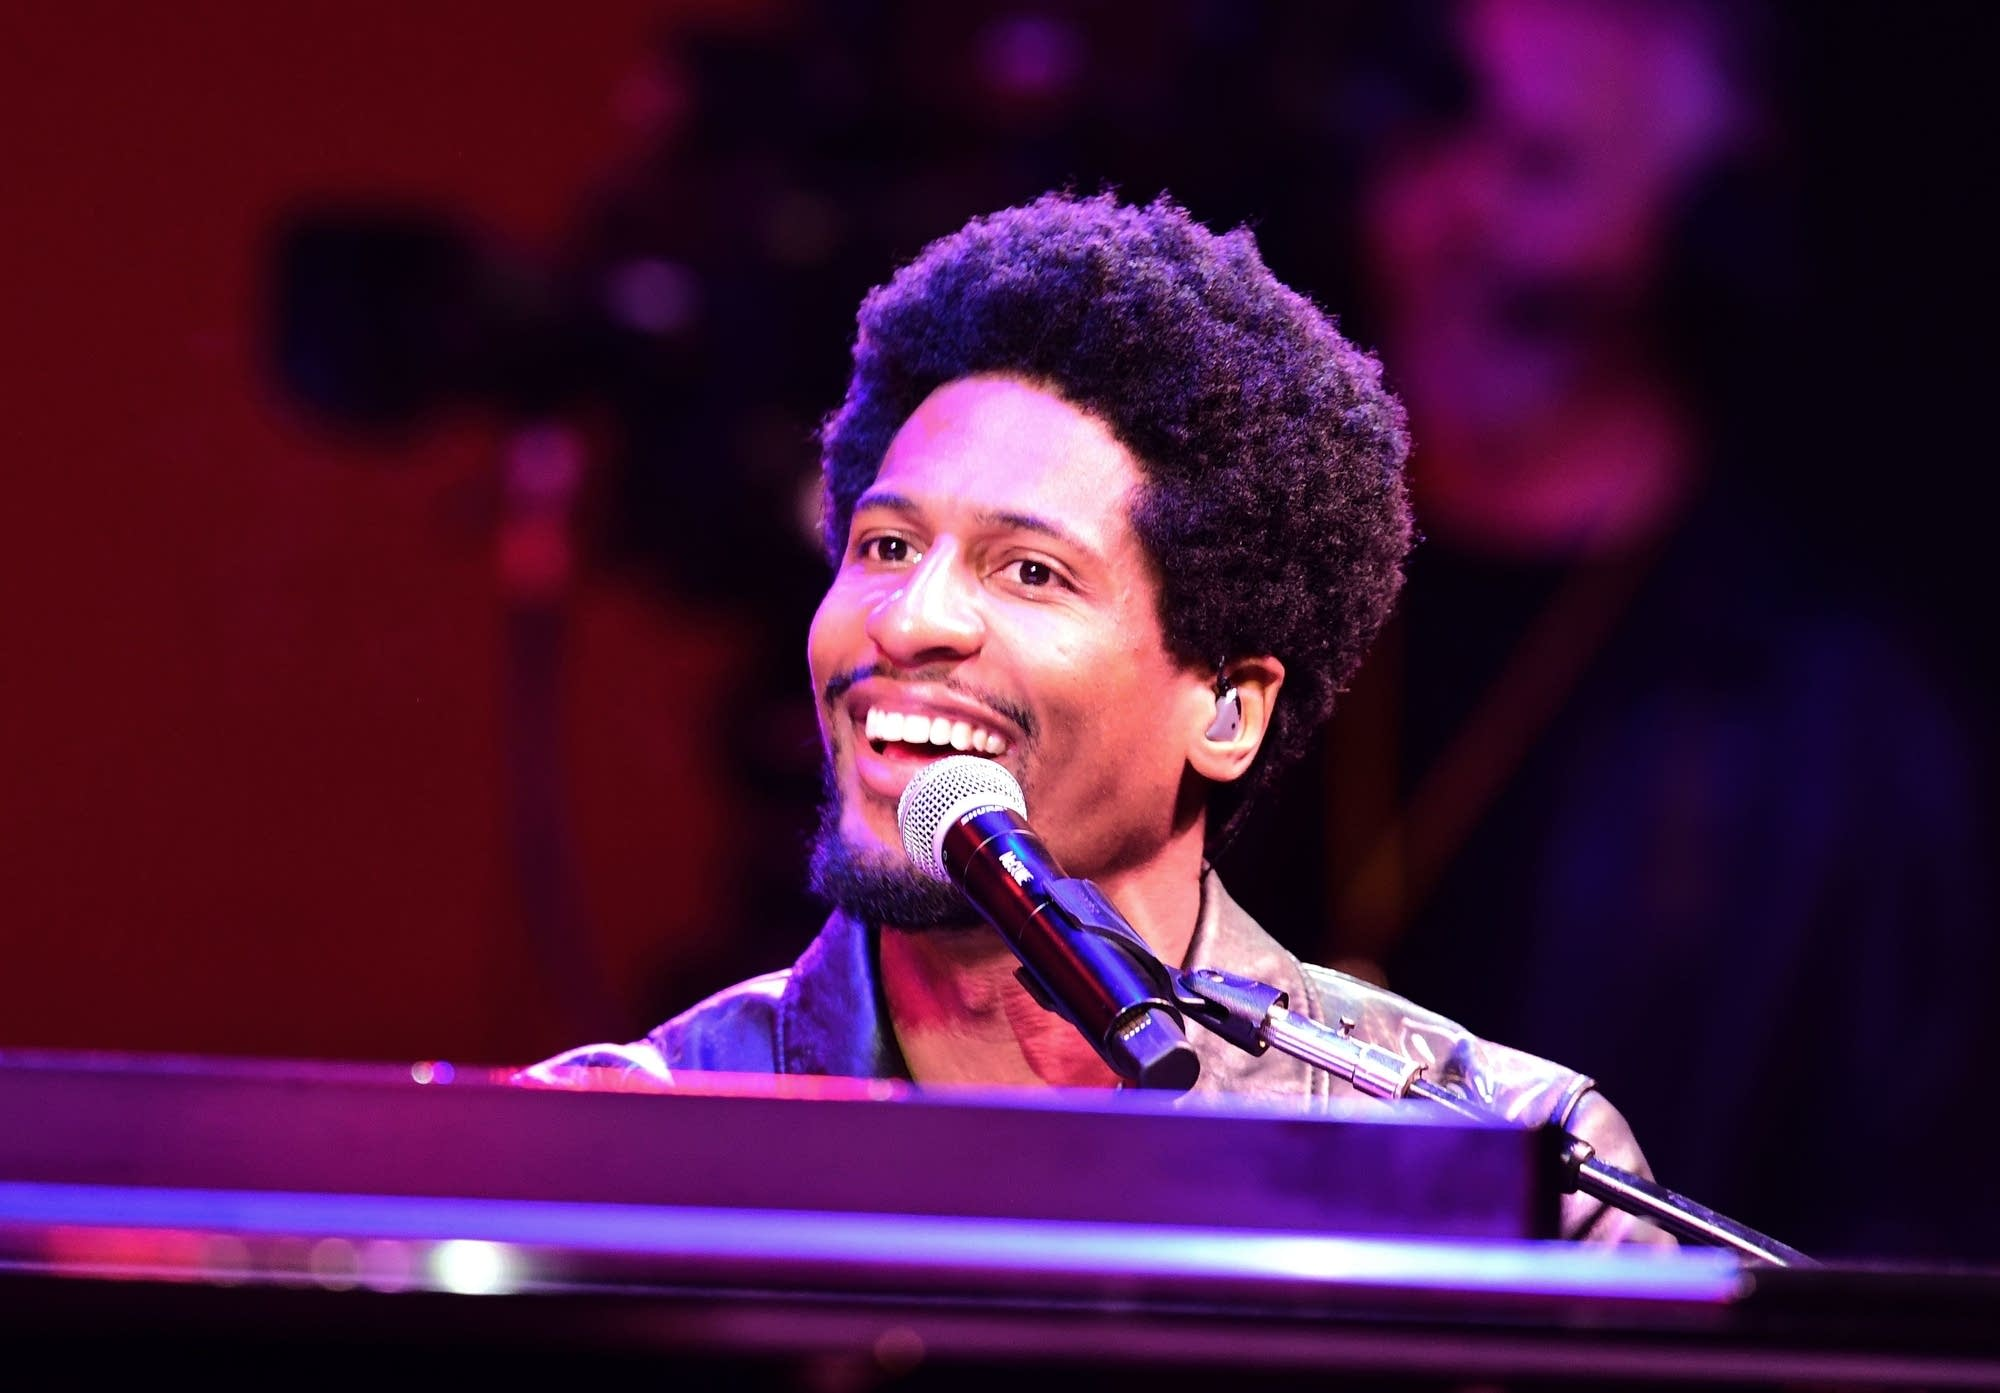 In the moment, you just fly': Jon Batiste lets loose at the